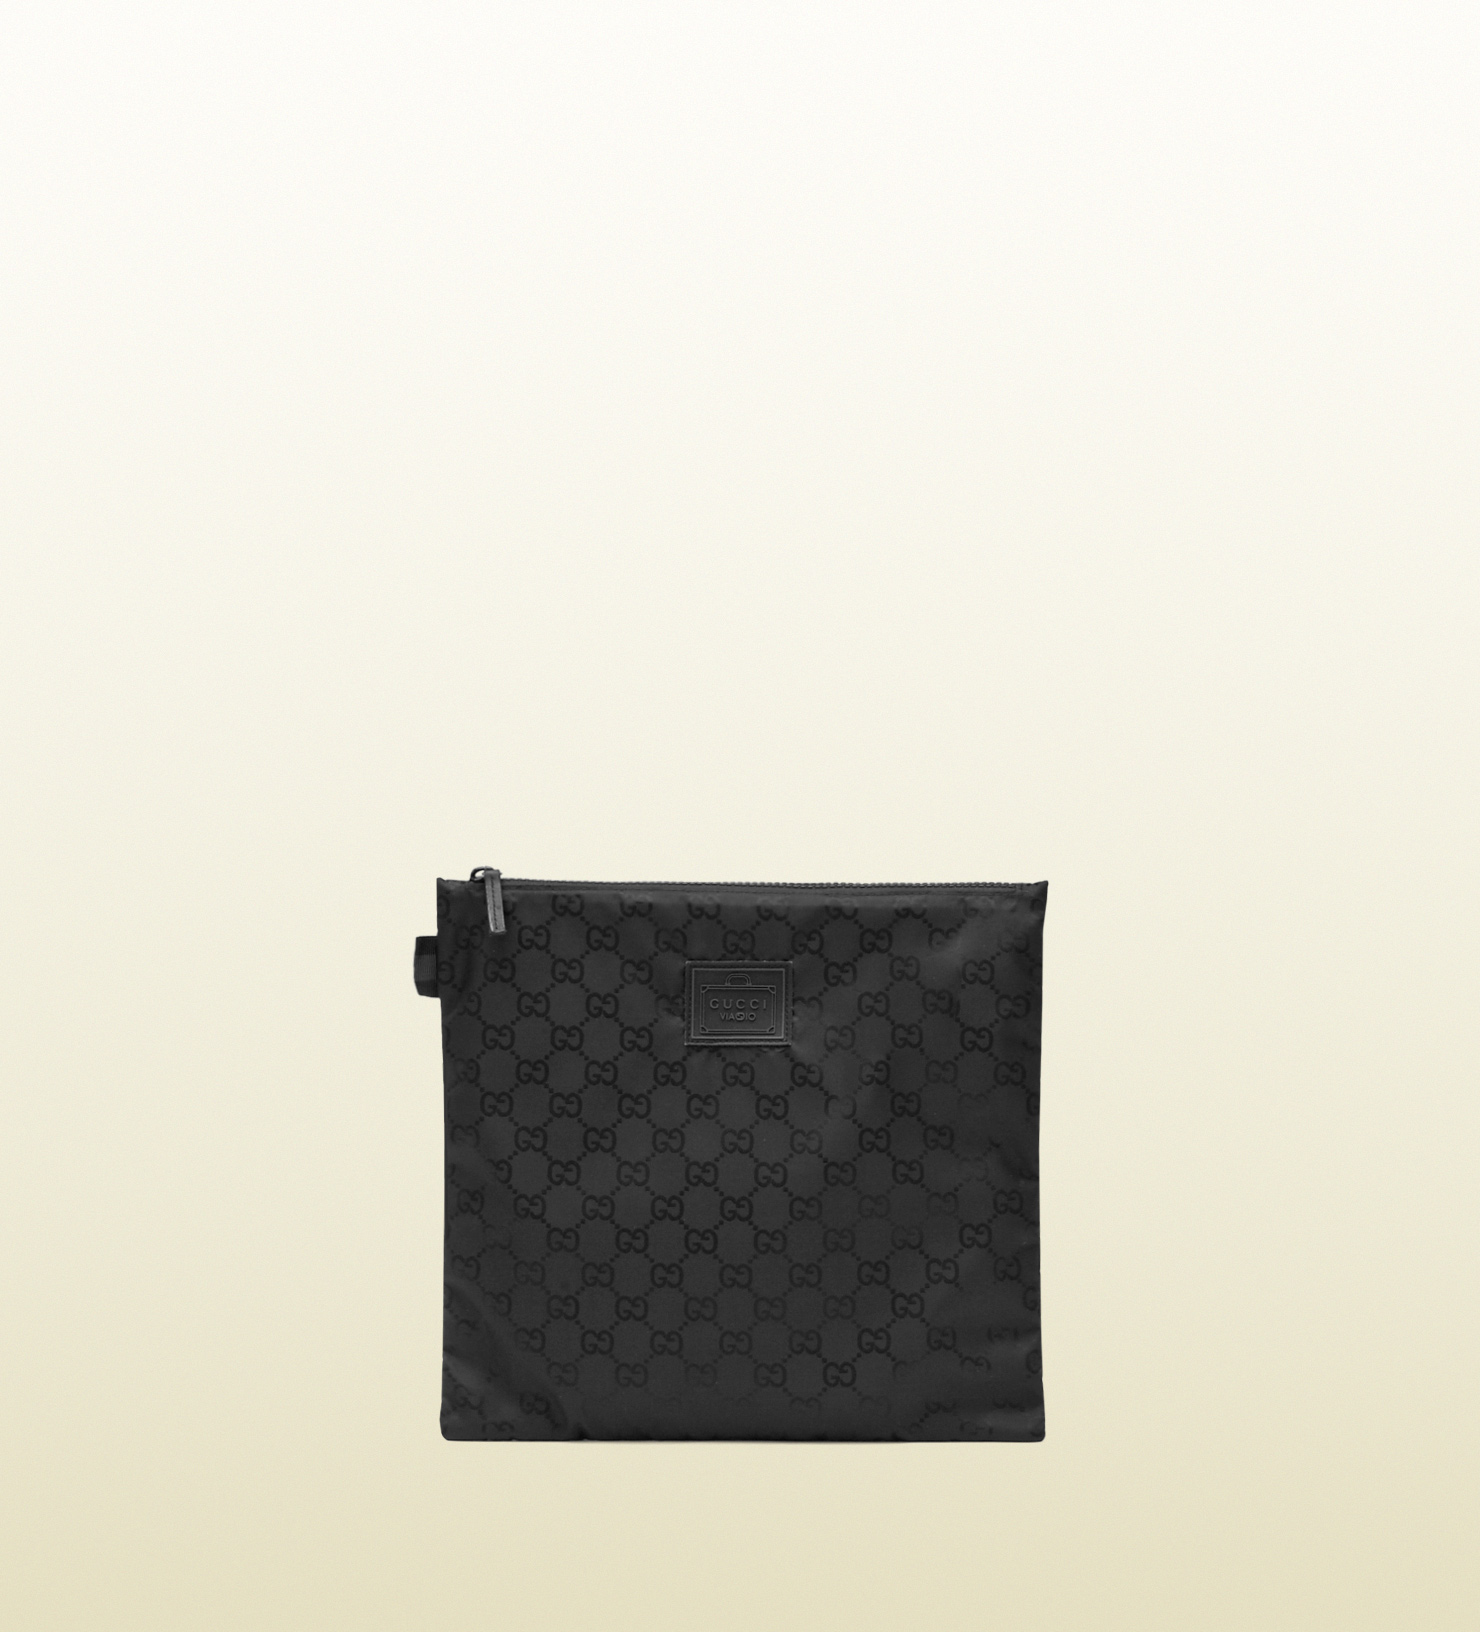 Gucci Black Large Toiletry Case From Viaggio Collection In Black For Men Lyst